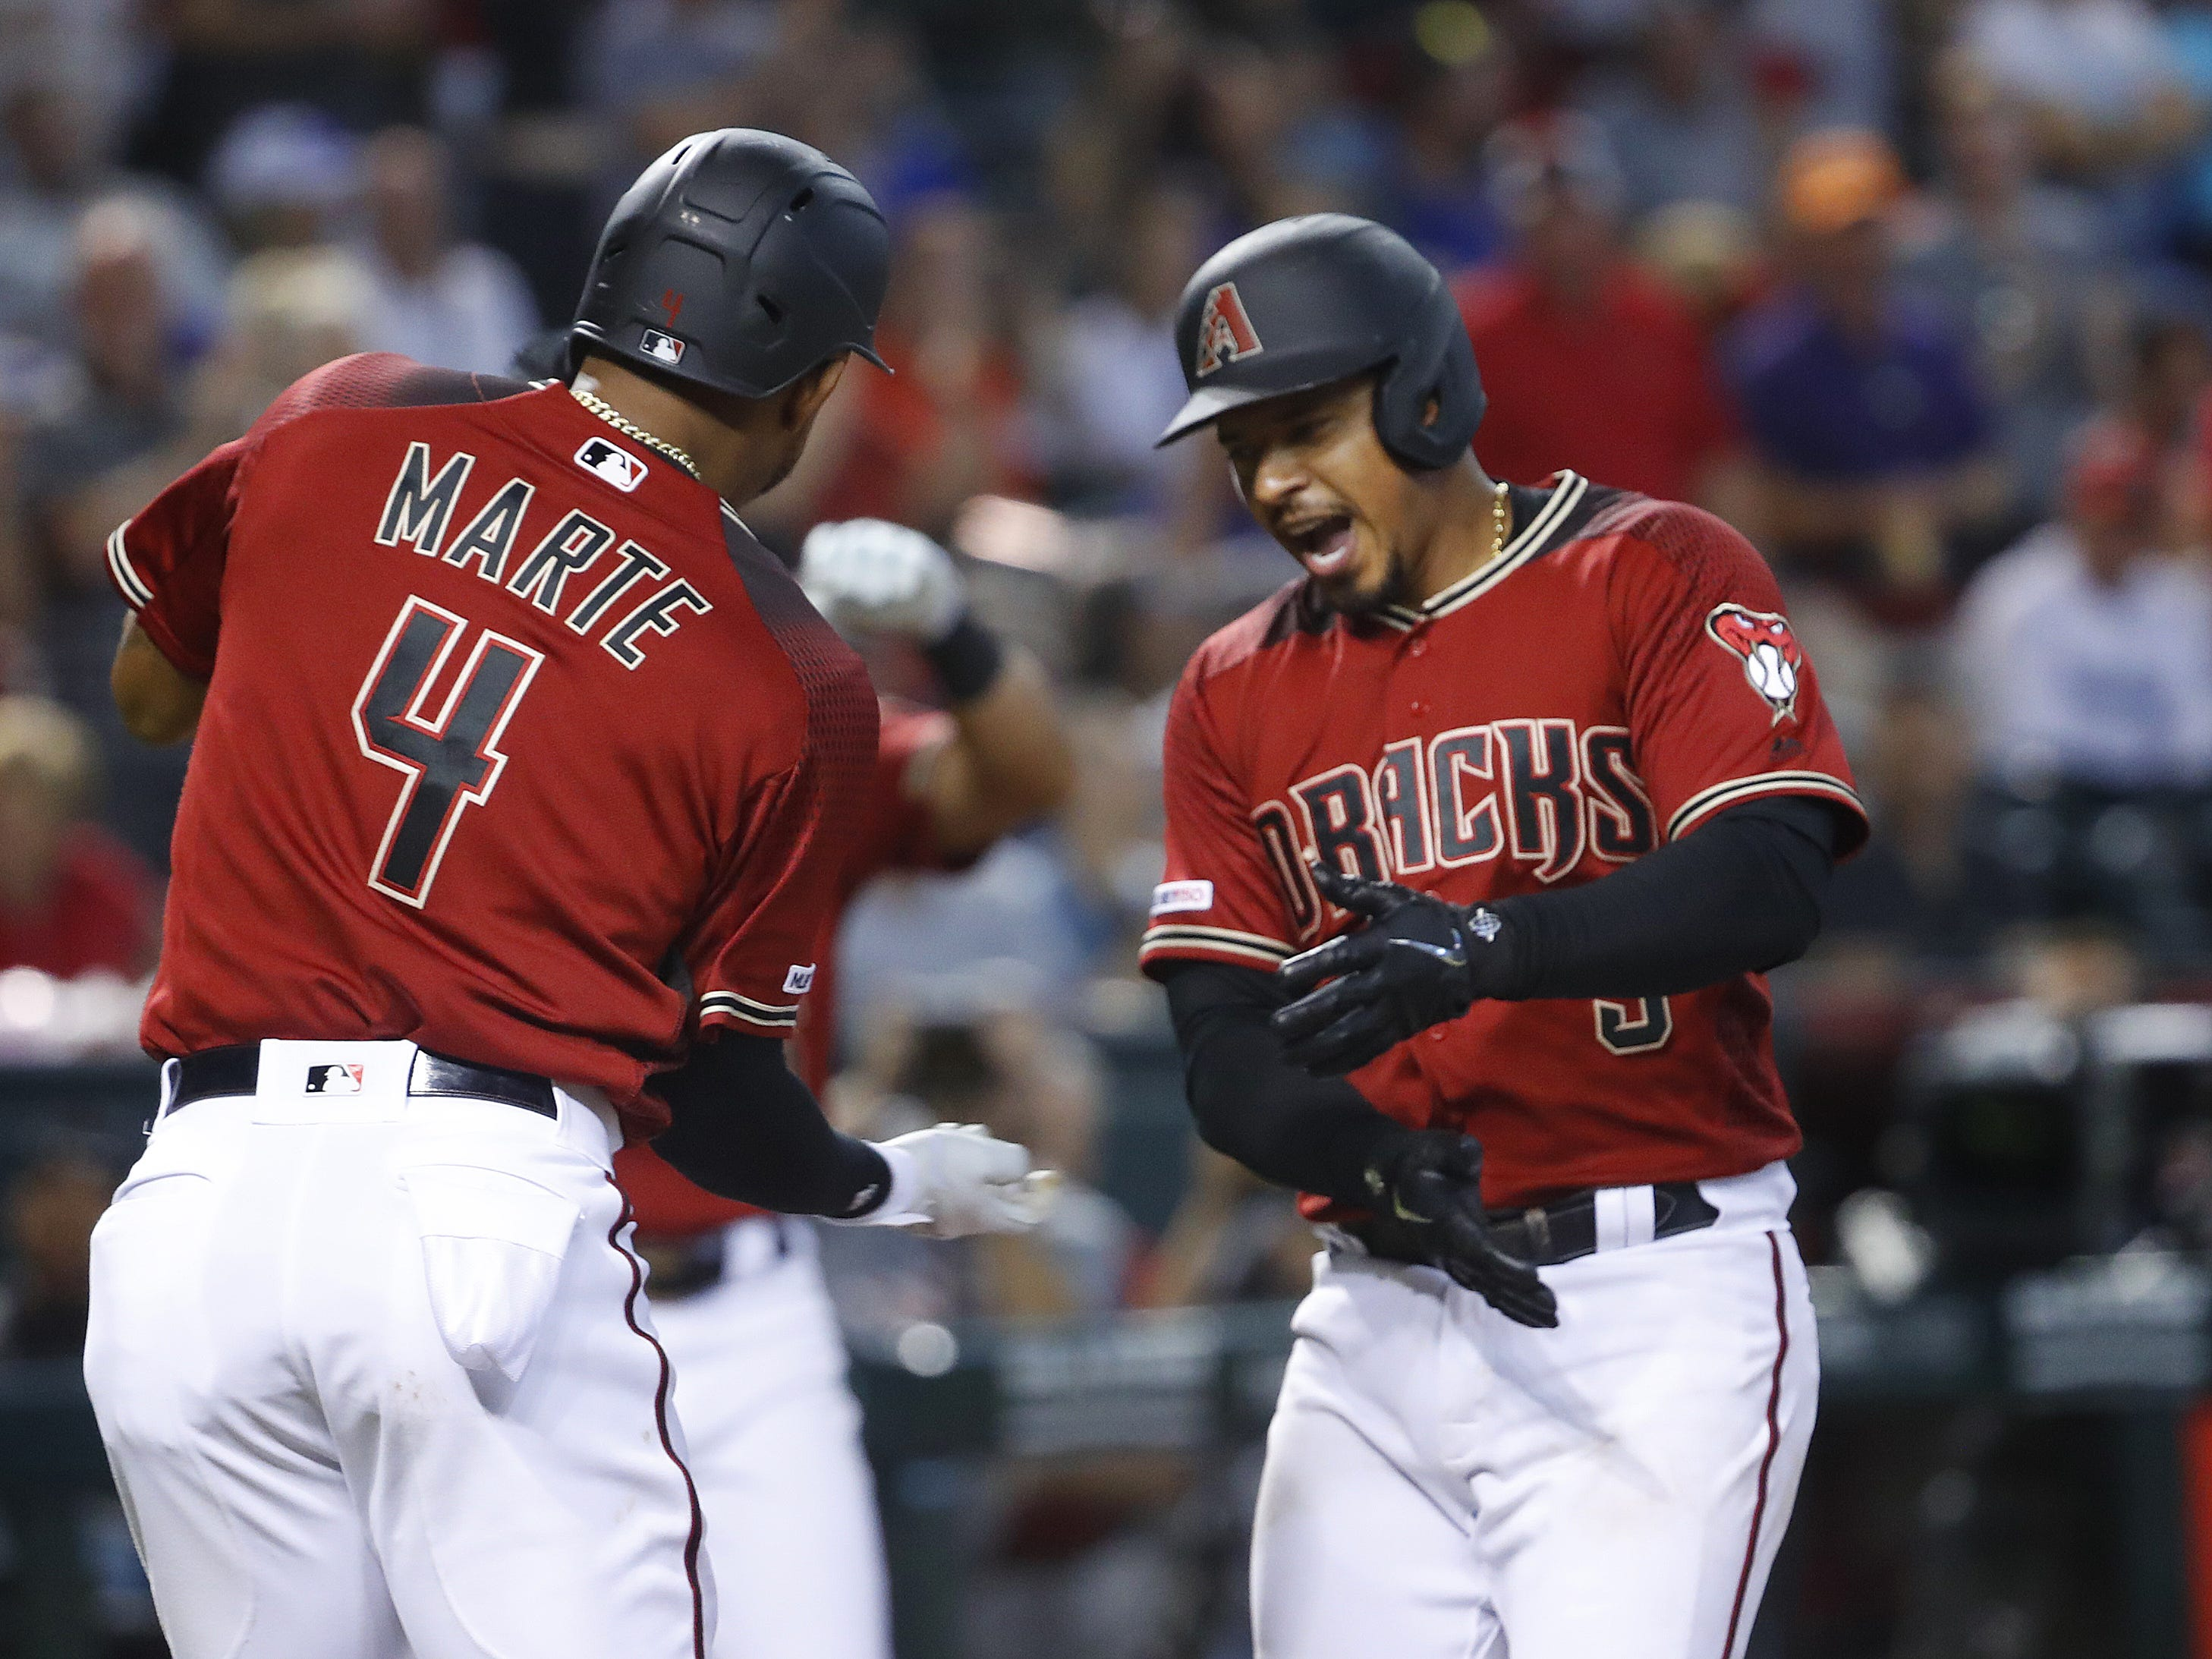 Diamondbacks Eduardo Escobar (5) celebrates at home with Ketel Marte (4) after hitting a two-run homer during the sixth inning against the Cubs at Chase Field in Phoenix, Ariz. on April 28, 2019.